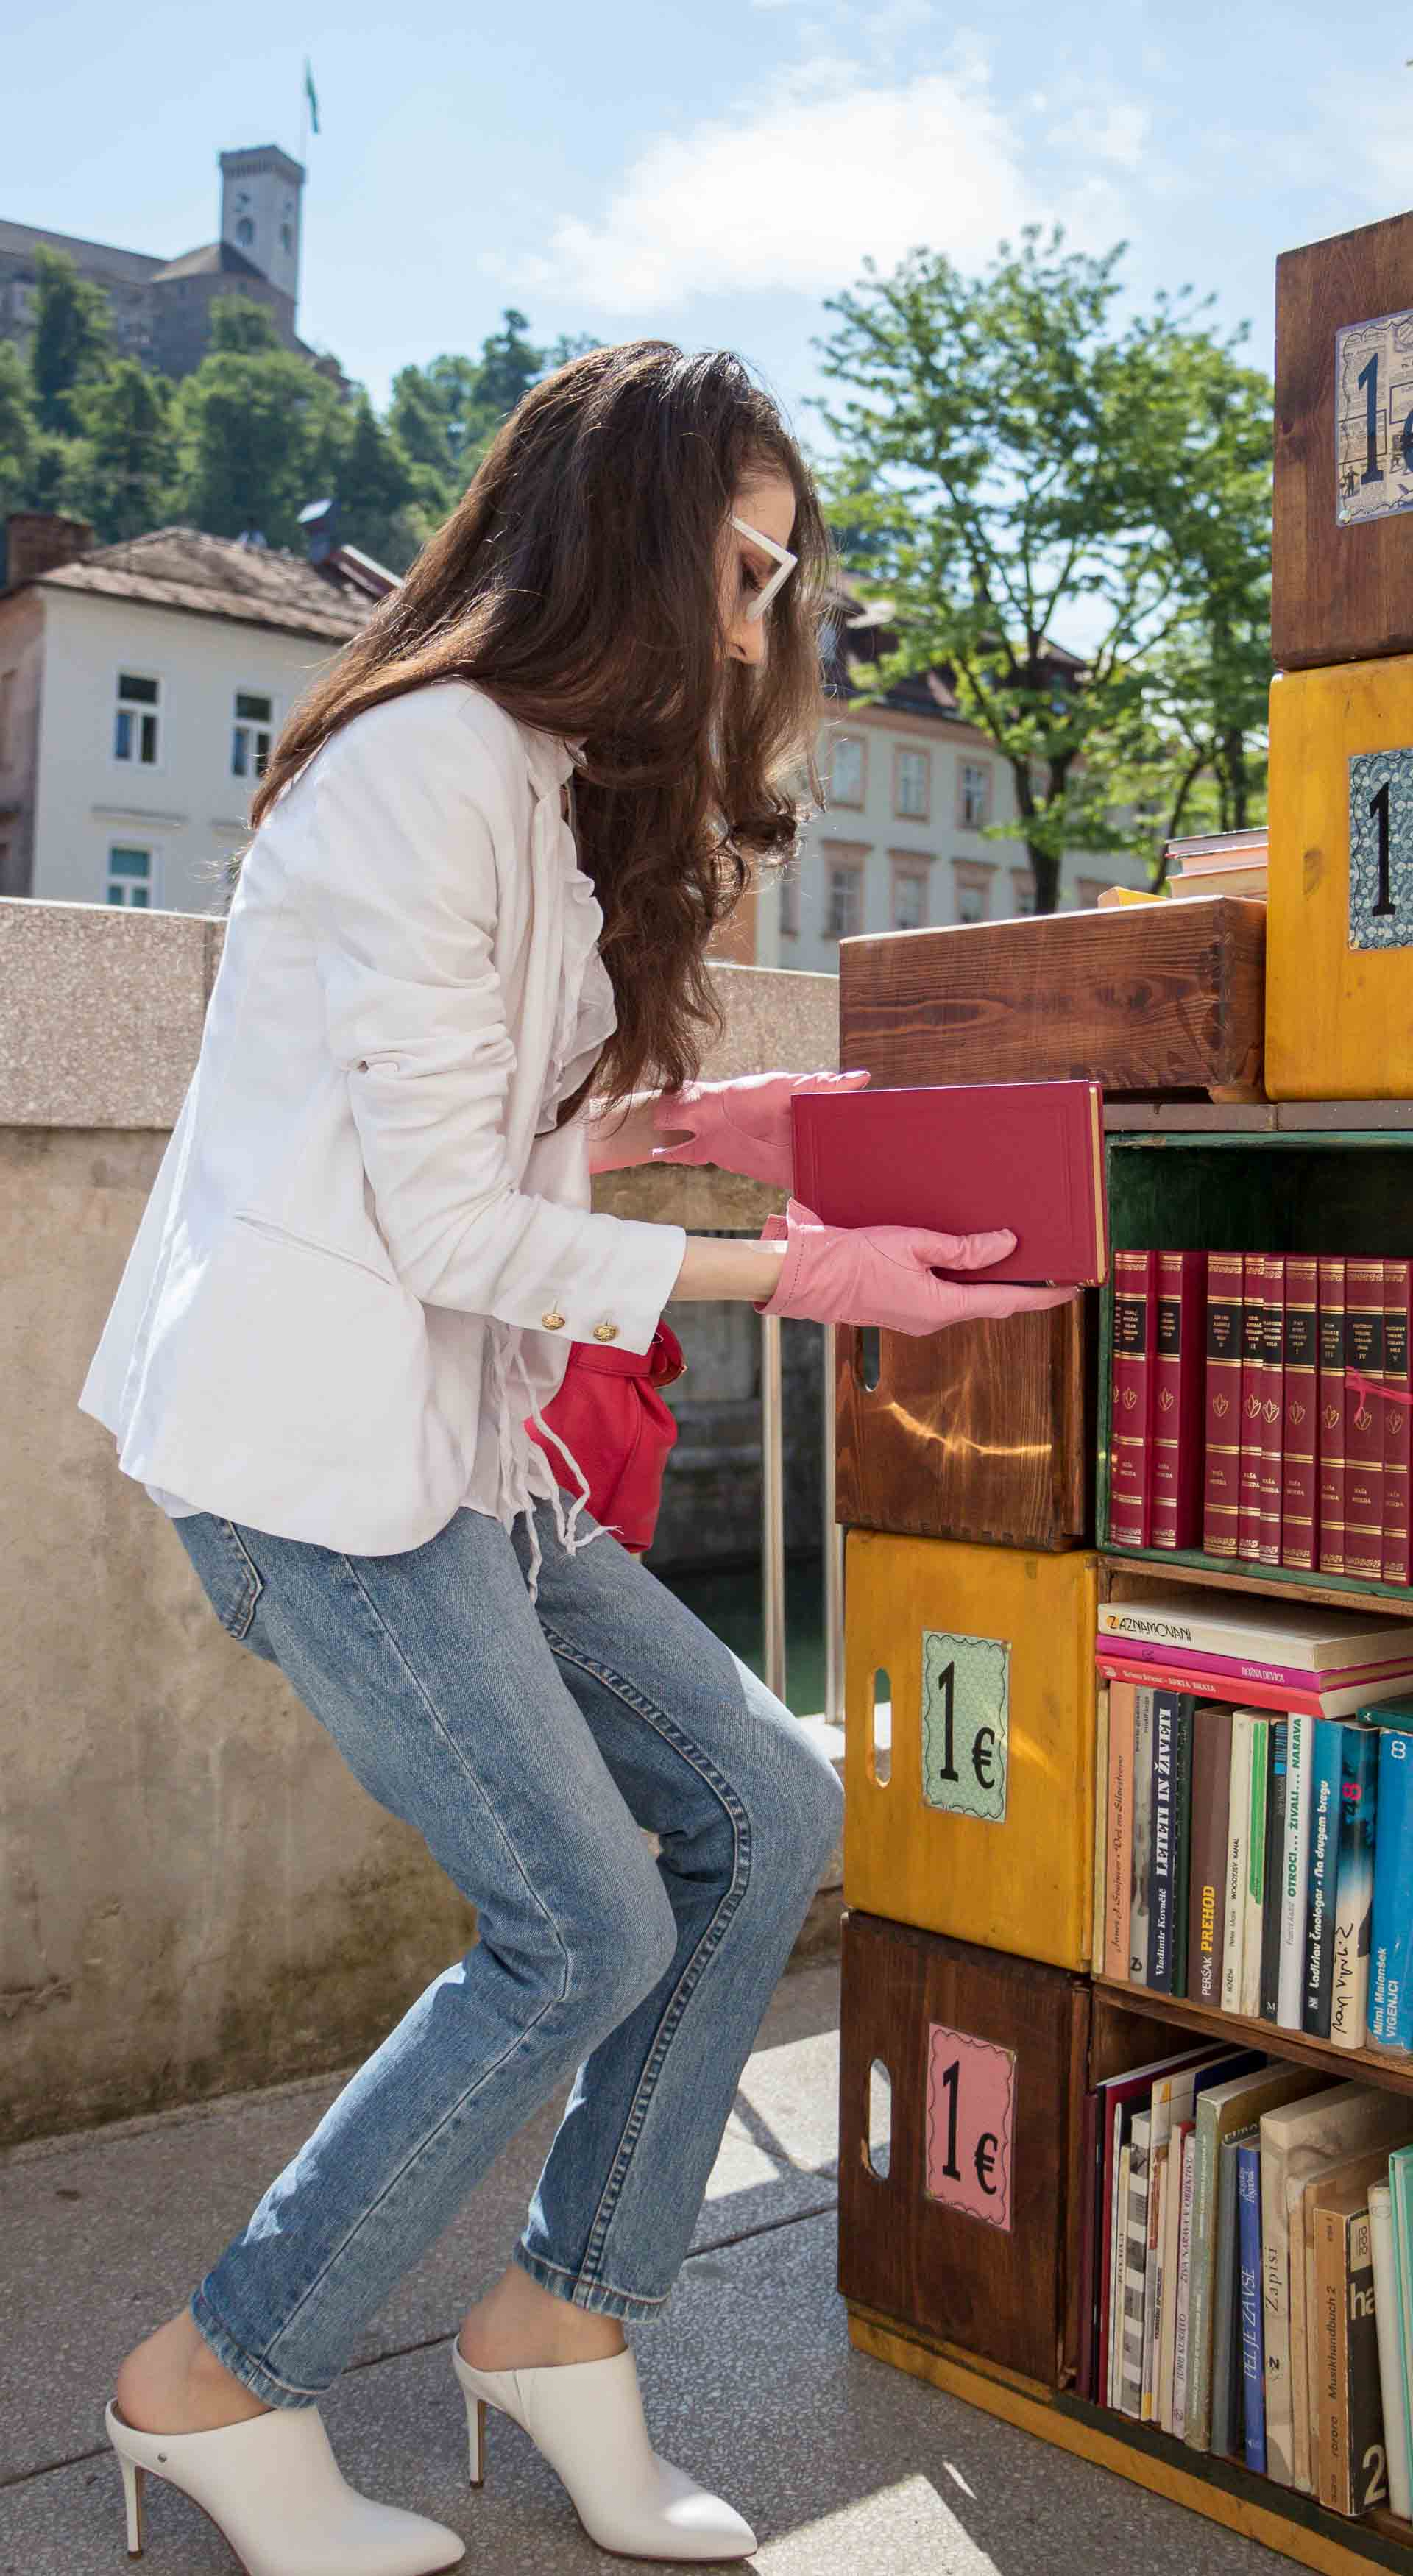 Veronika Lipar Fashion Blogger of Brunette from Wall Street dressed in white mules, blue A.P.C. mom jeans, white fringe blouse, white blazer, pink gloves, pink top handle bag and Le Specs Lolita white cat eye sunglasses while choosing a book at the book stand on the street